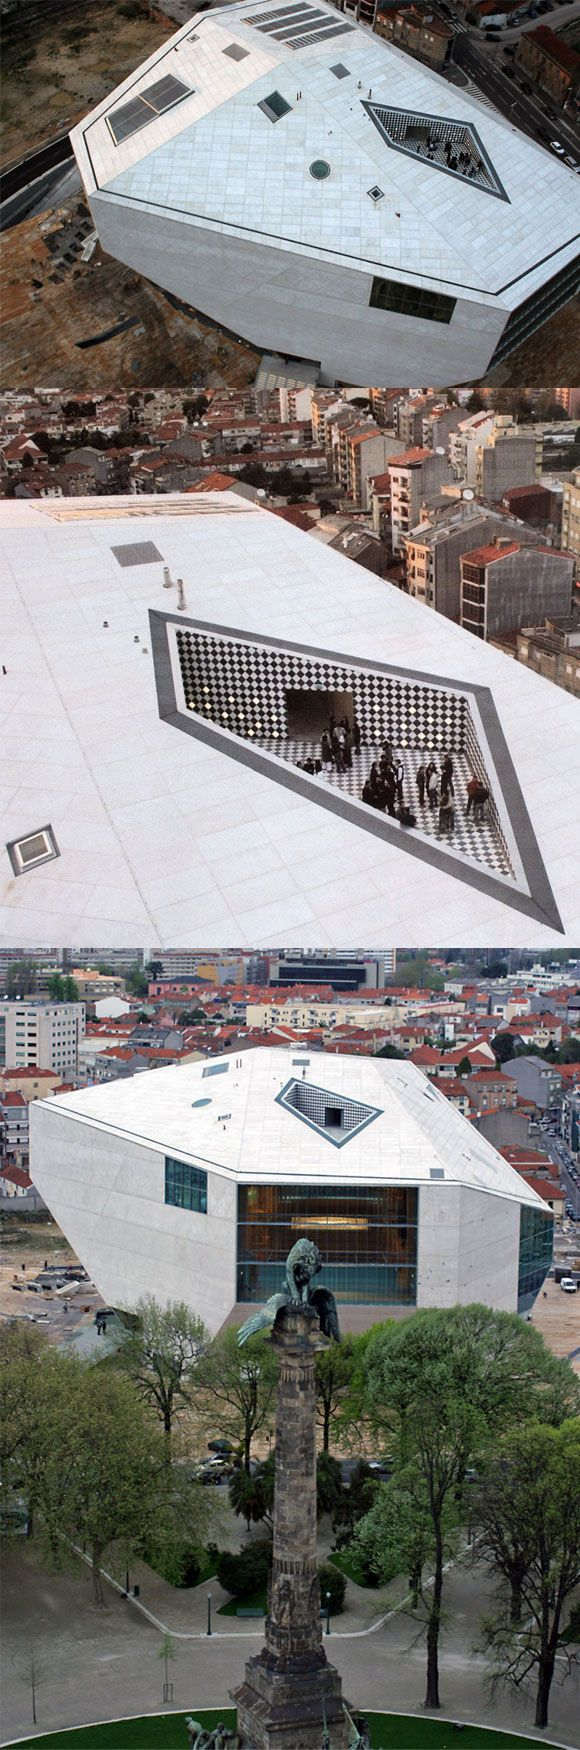 Casa da Música - House of the Music, Oporto #Portugal | Architects: ANC Architects, Jorge Carvalho, Teresa Novais